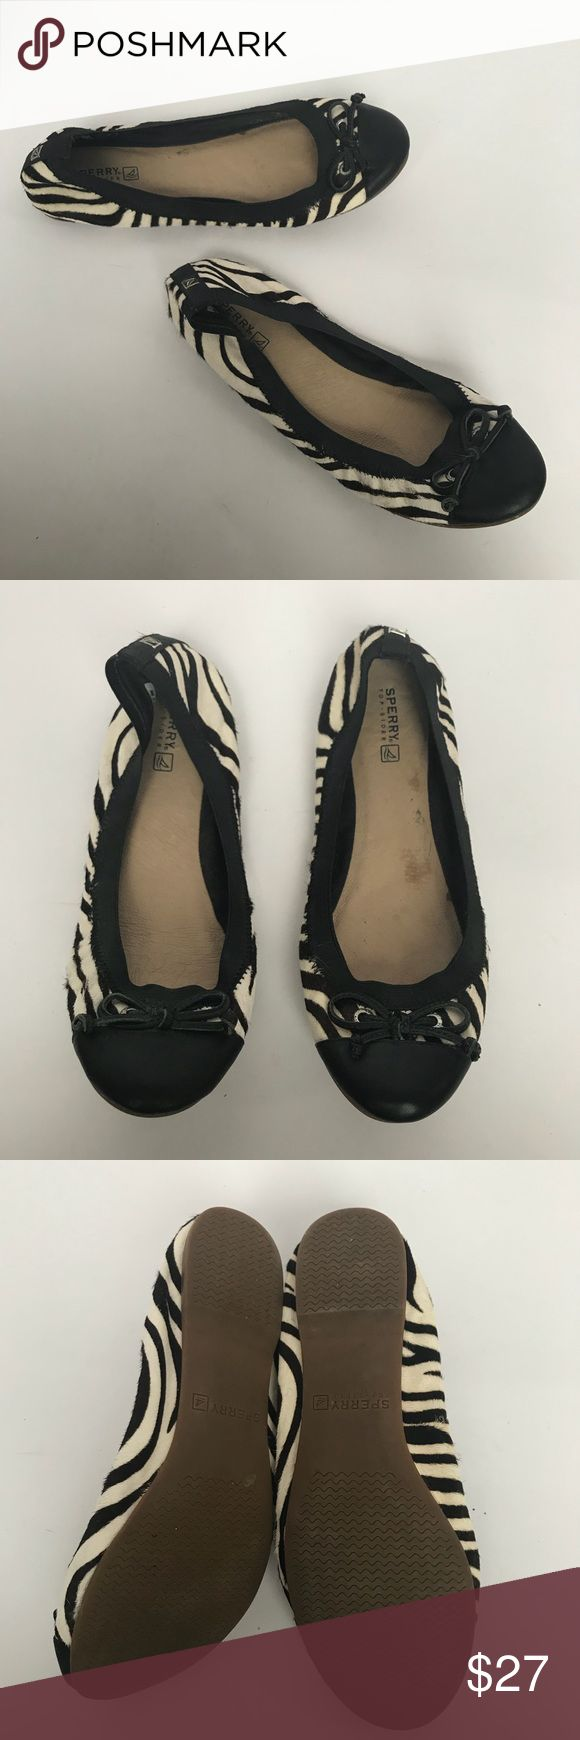 Sperry zebra striped ballet slipper flat Excellent condition, only worn twice. The stripes are actually a very dark brown, not black. Cute and comfy. Sperry Shoes Flats & Loafers